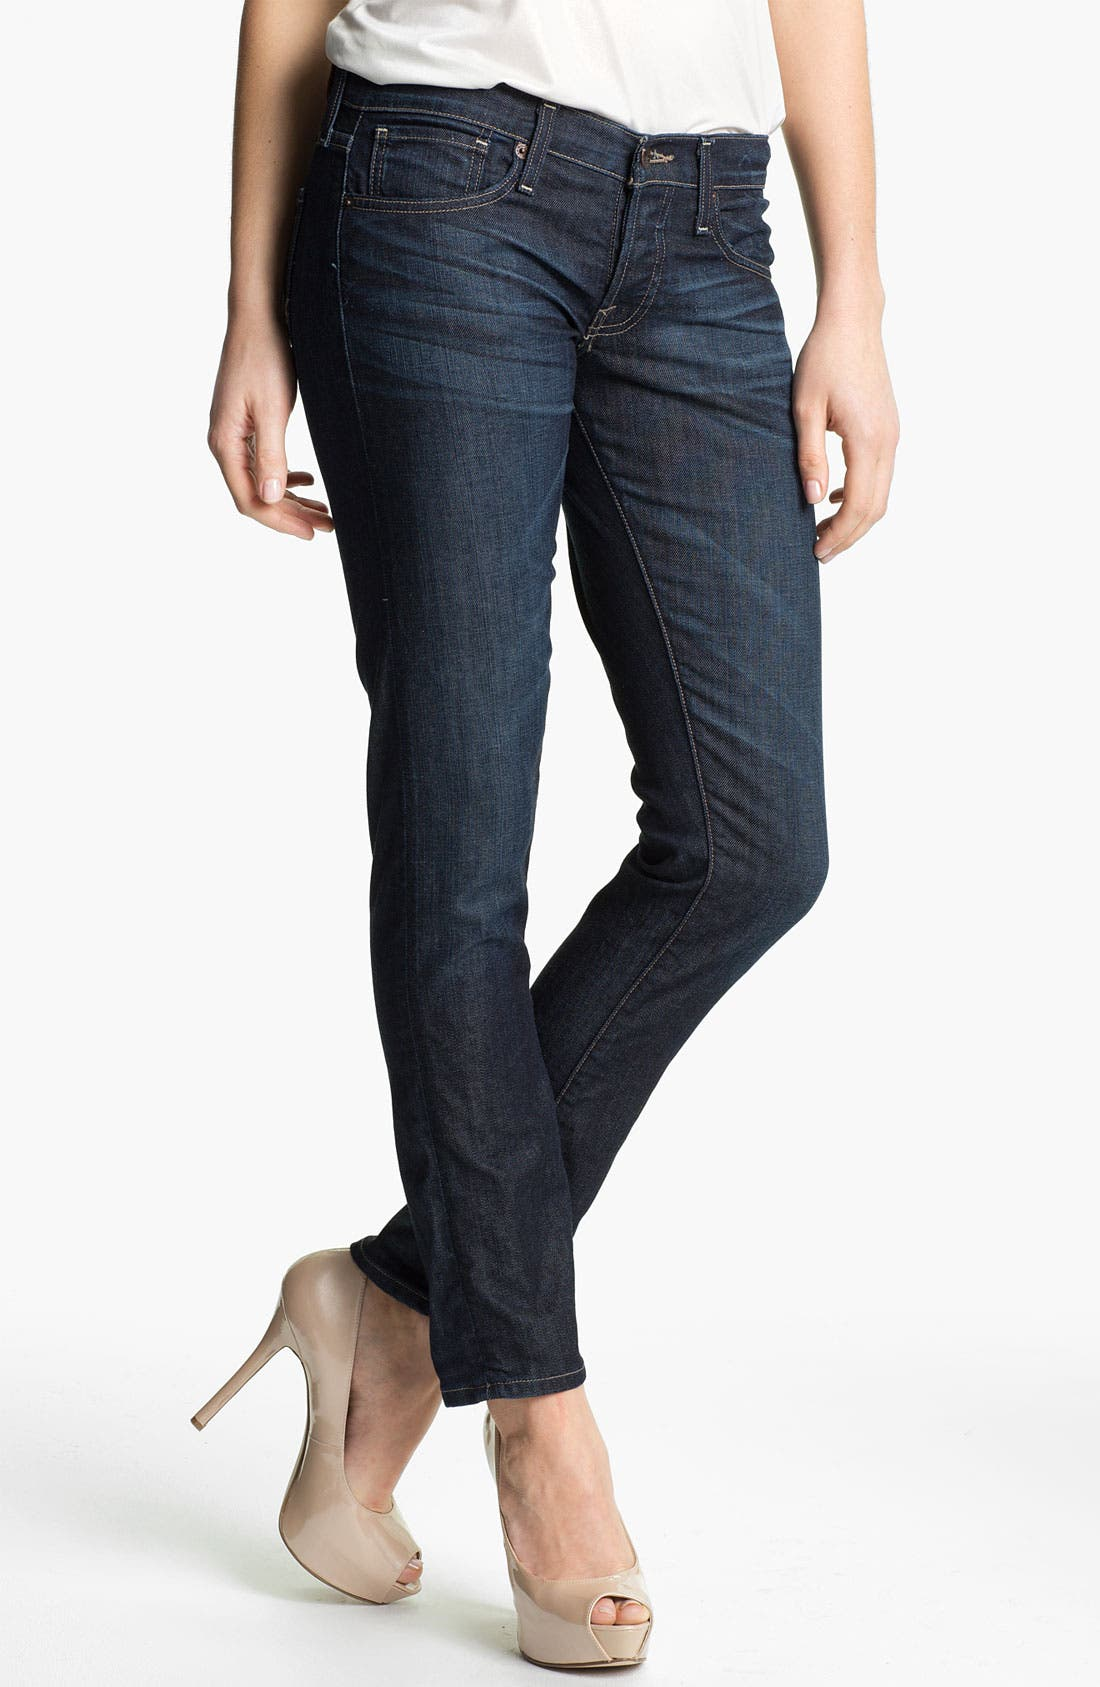 Main Image - Lucky Brand 'Sienna' Cigarette Jeans (Dark Paley) (Online Exclusive)